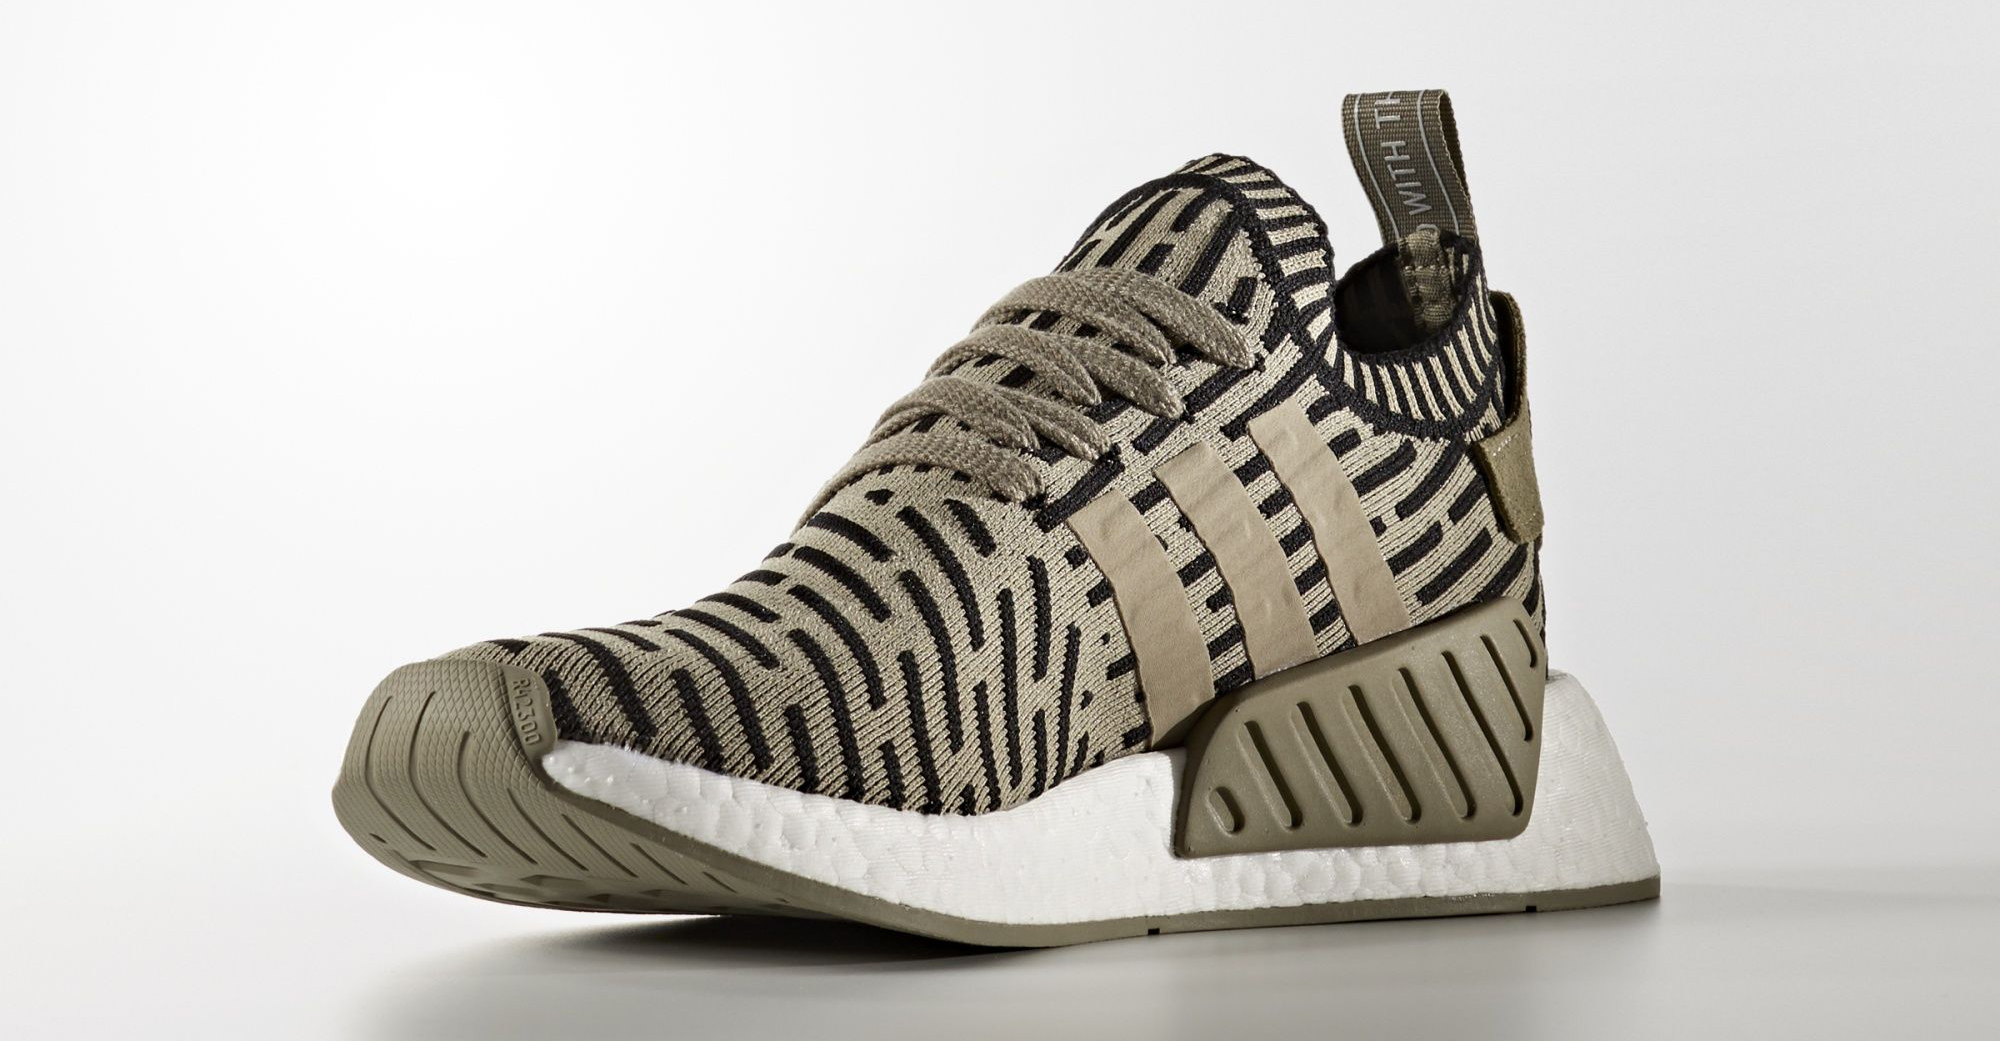 comprare adidas nmd r2 mens marrone > off62%)